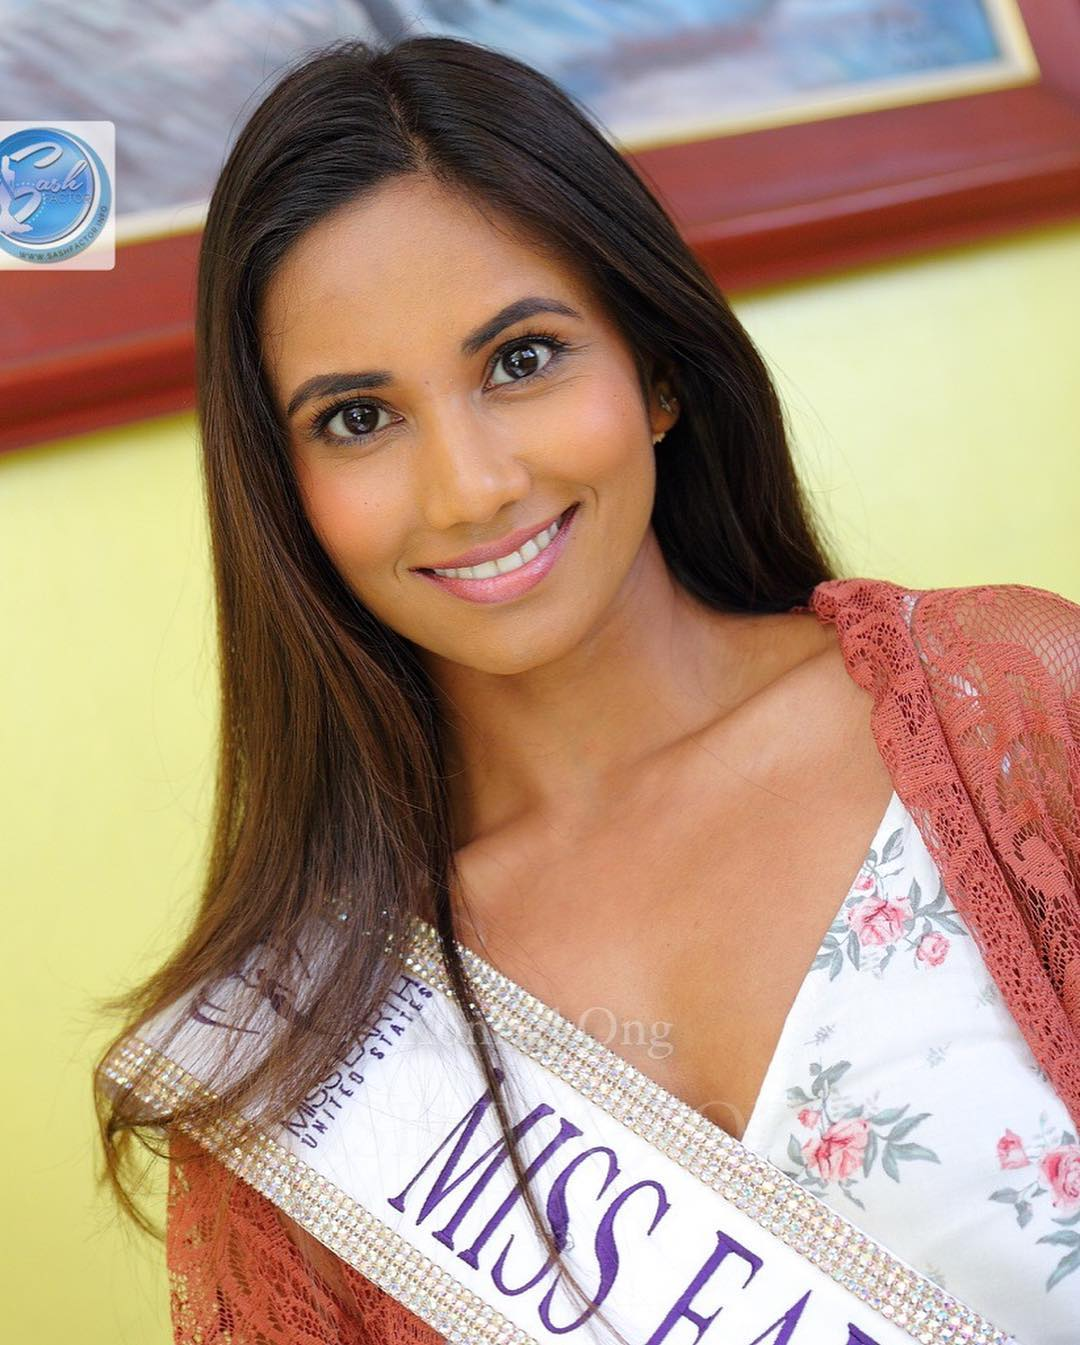 yashvi aware, miss earth usa 2018. - Página 3 42316010